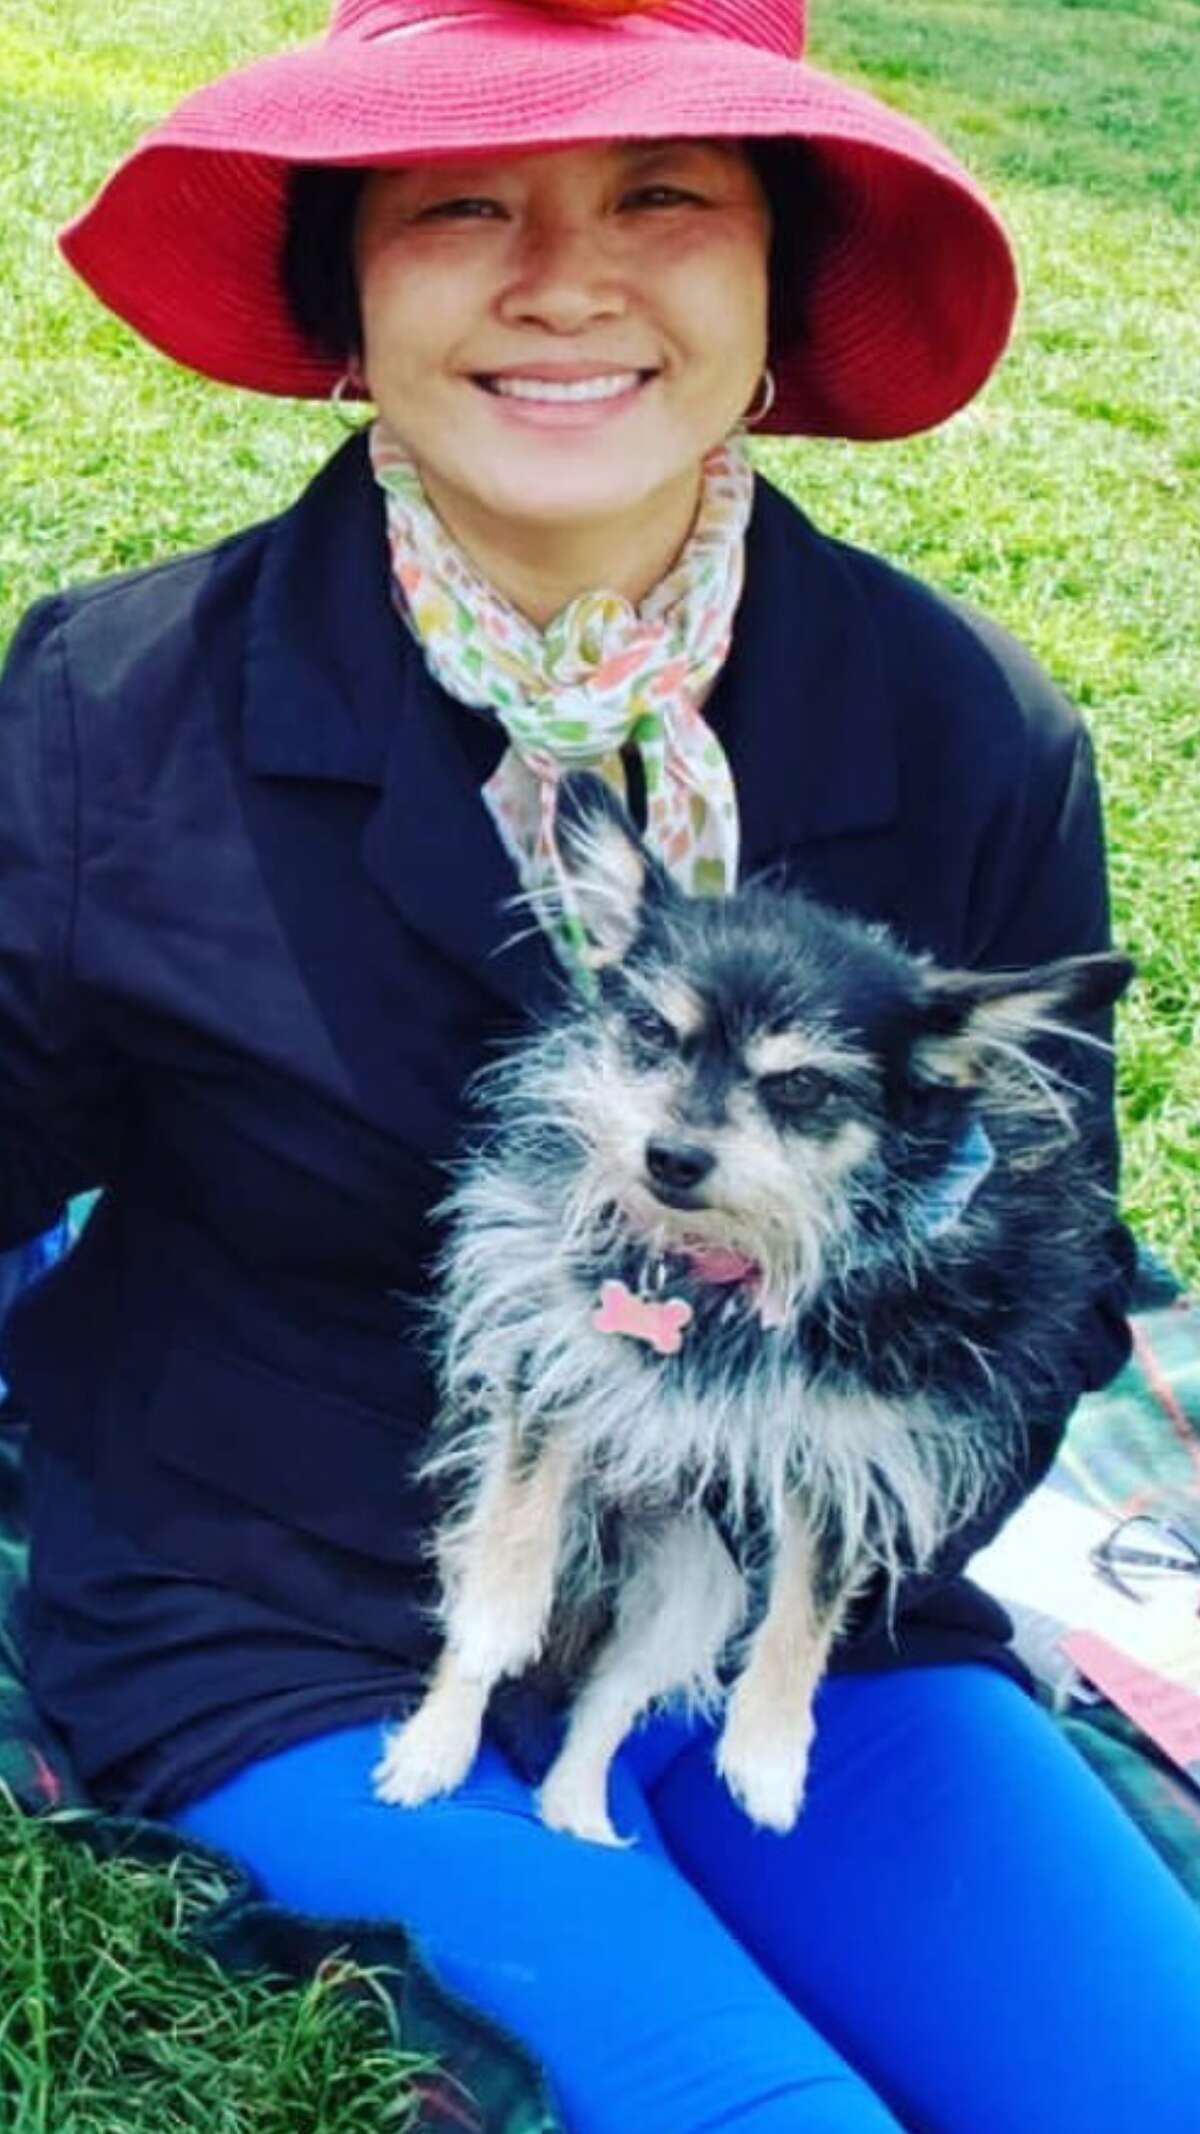 Shawna Lee's dog, Fei Fei, was mauled to death by a pit bull in Dolores Park on Monday, she said.